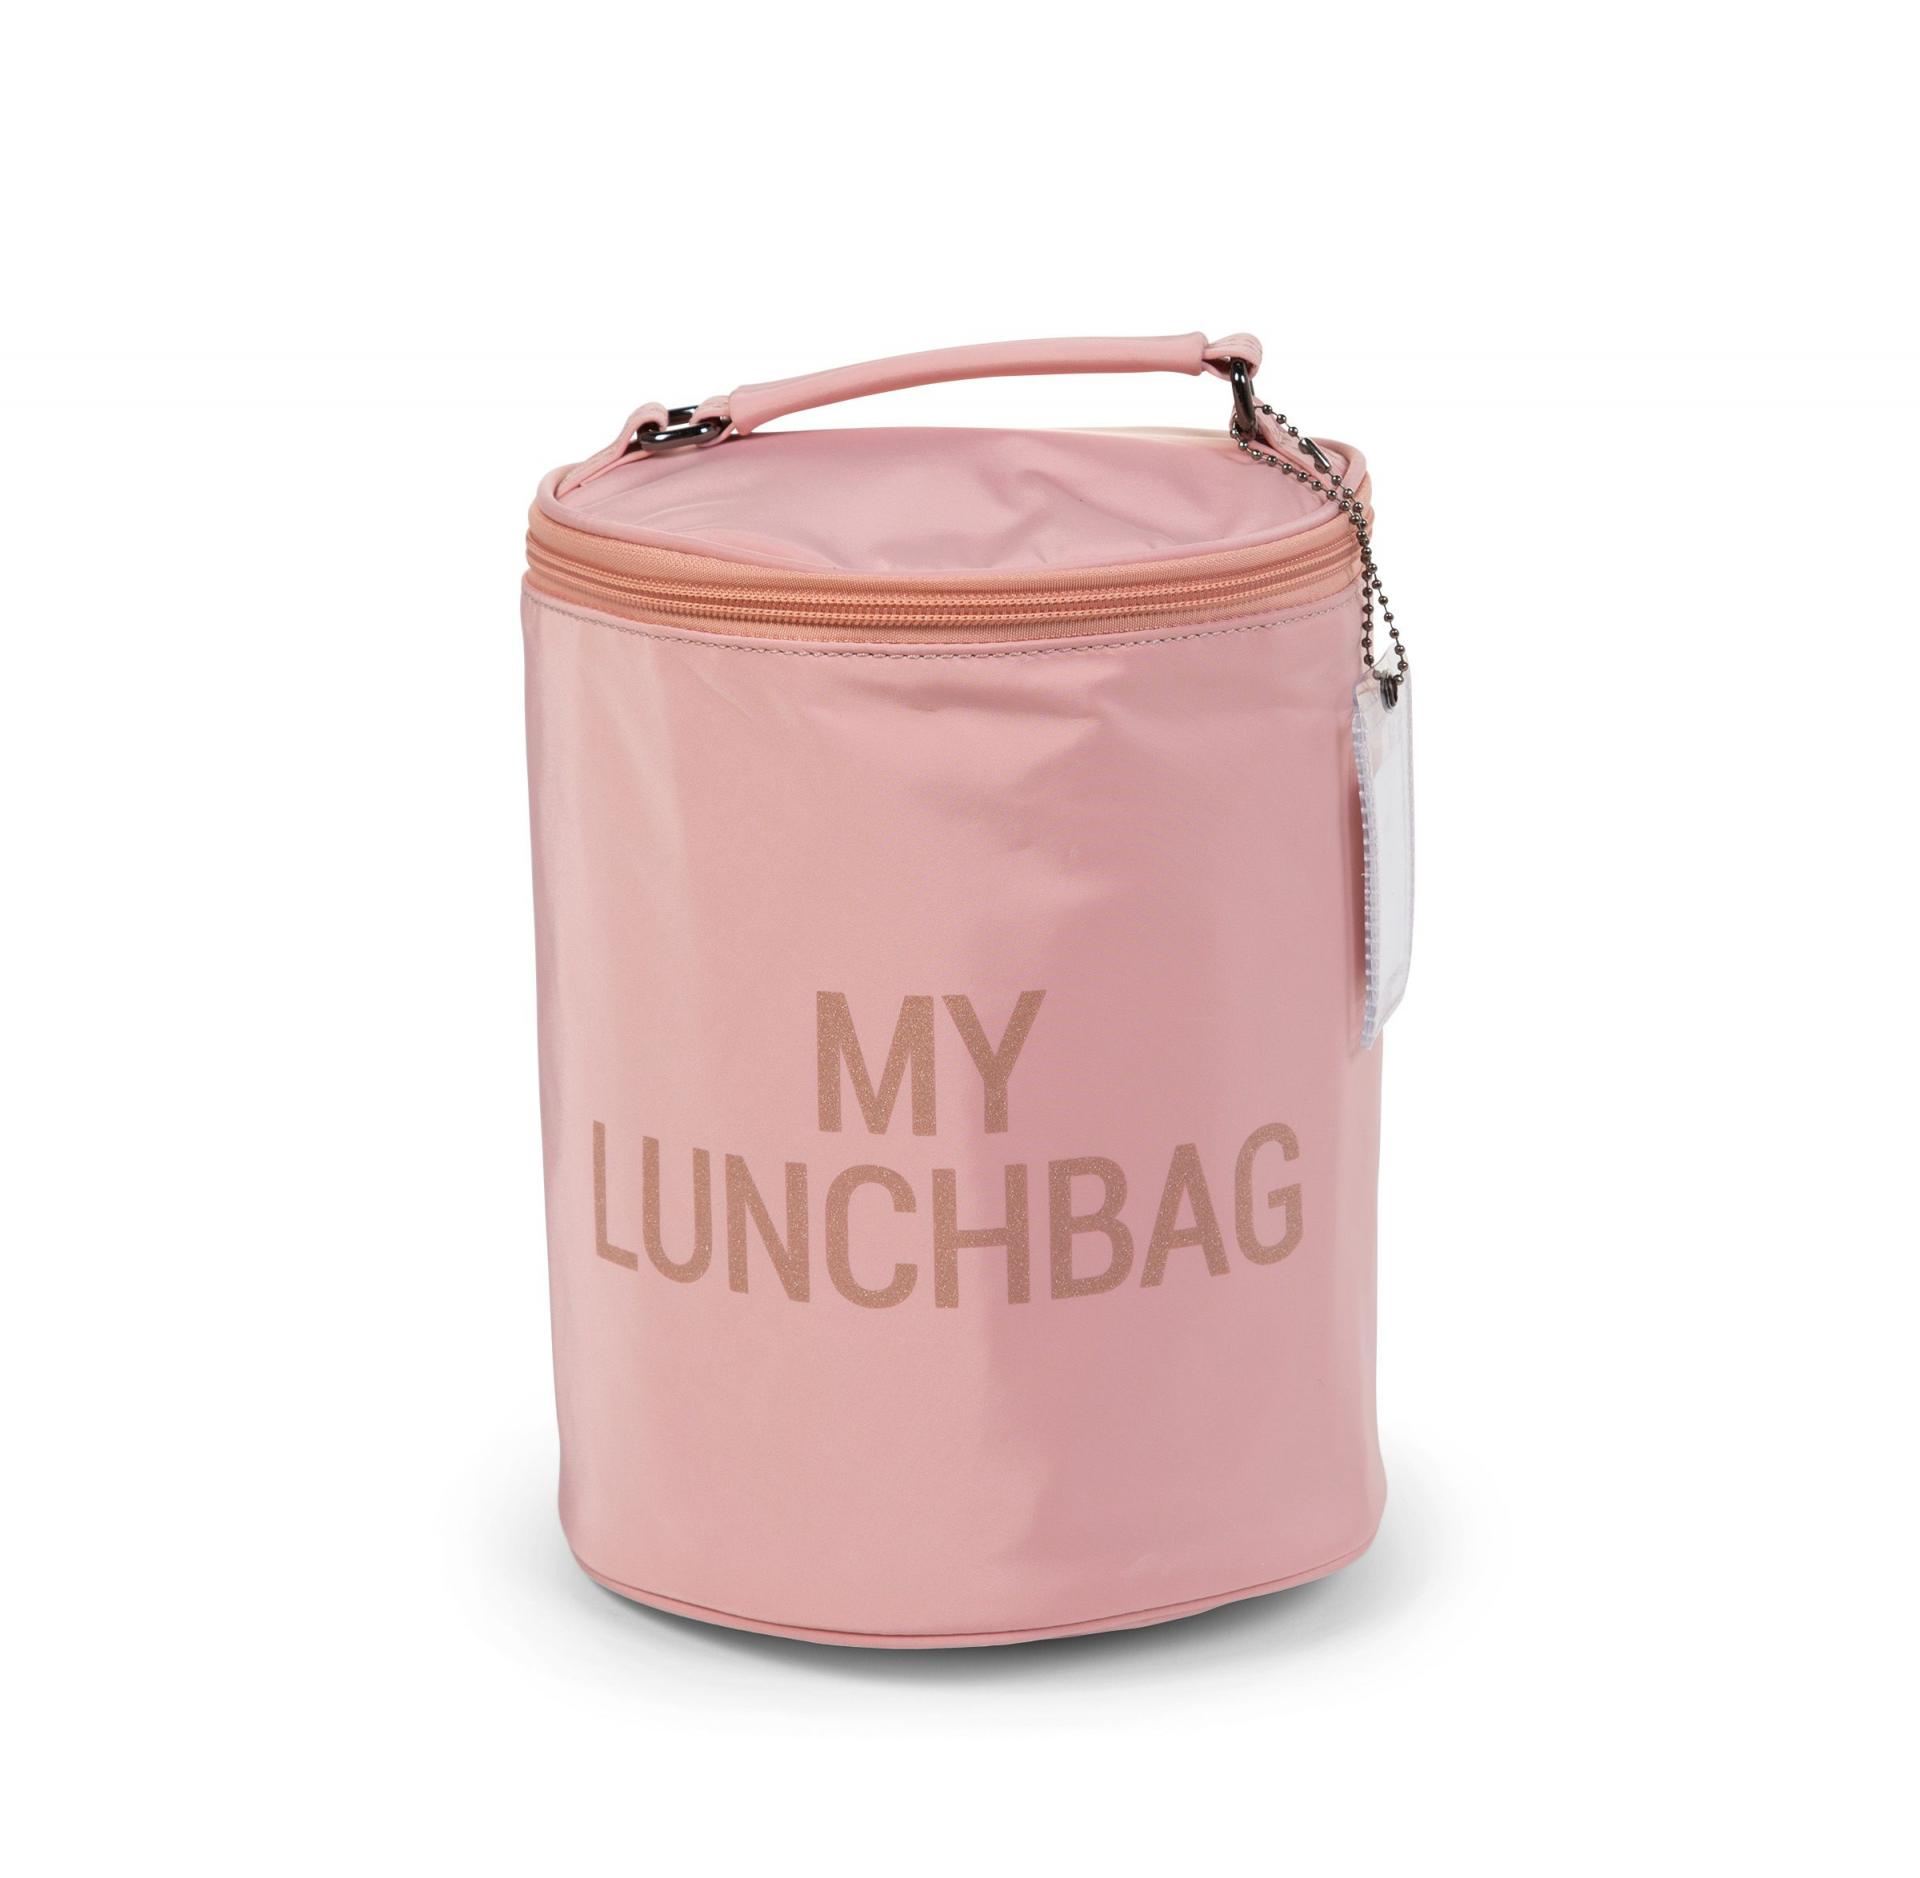 My Lunchbag - With Insulation Lining -Rosa